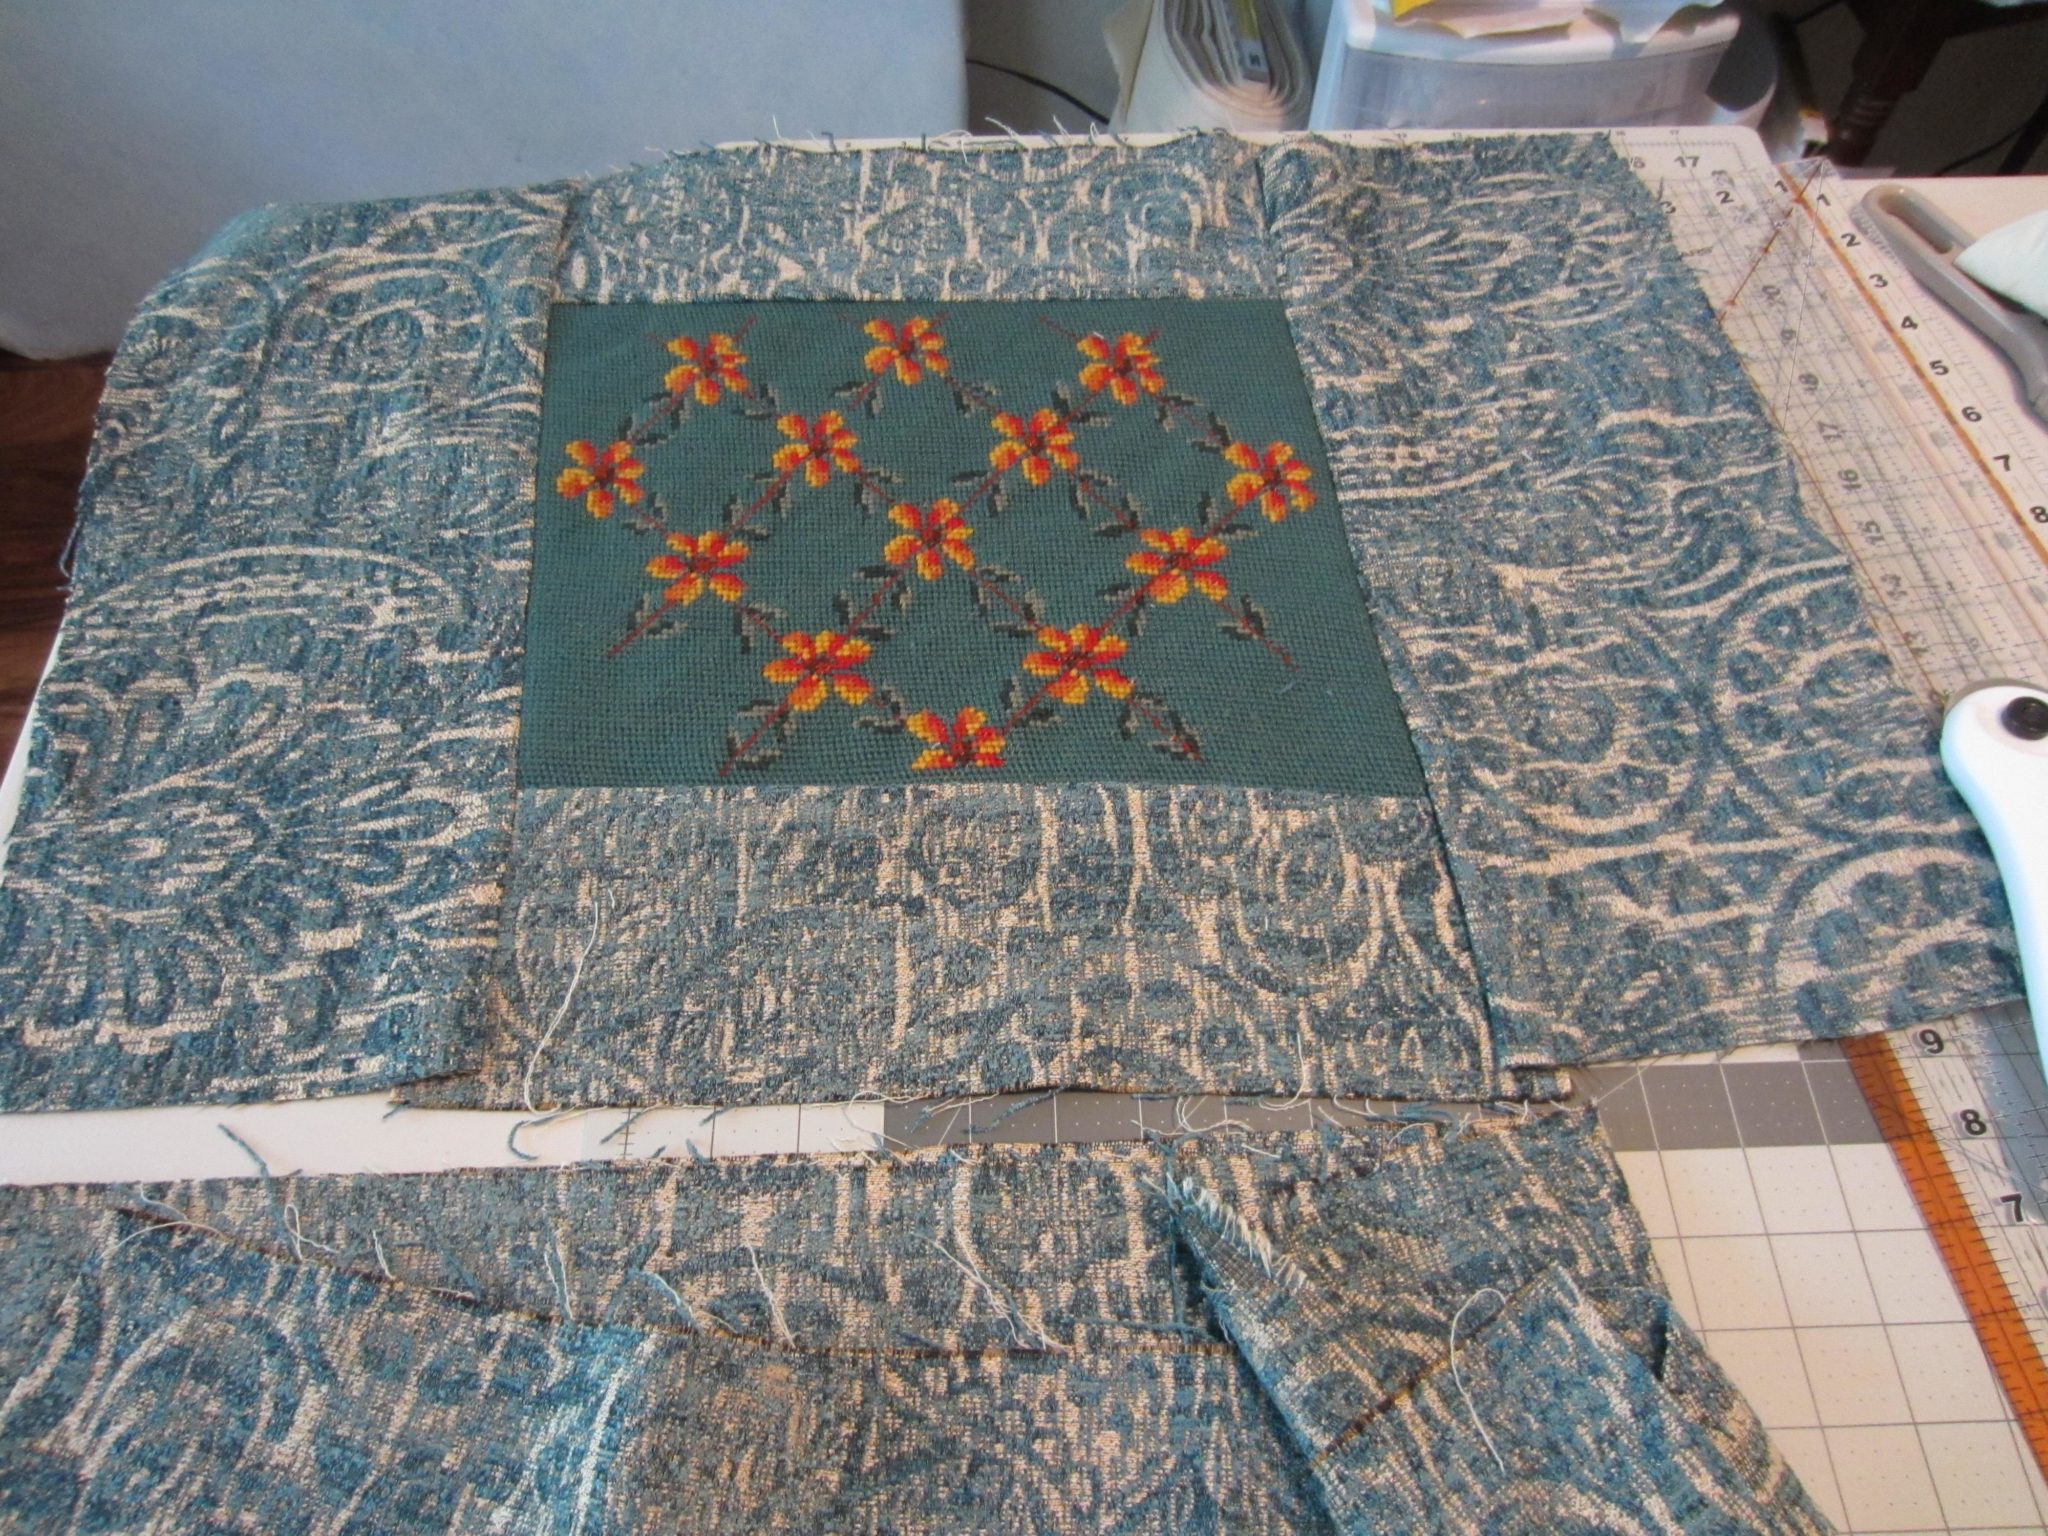 Pillow top done, working on back of pillow